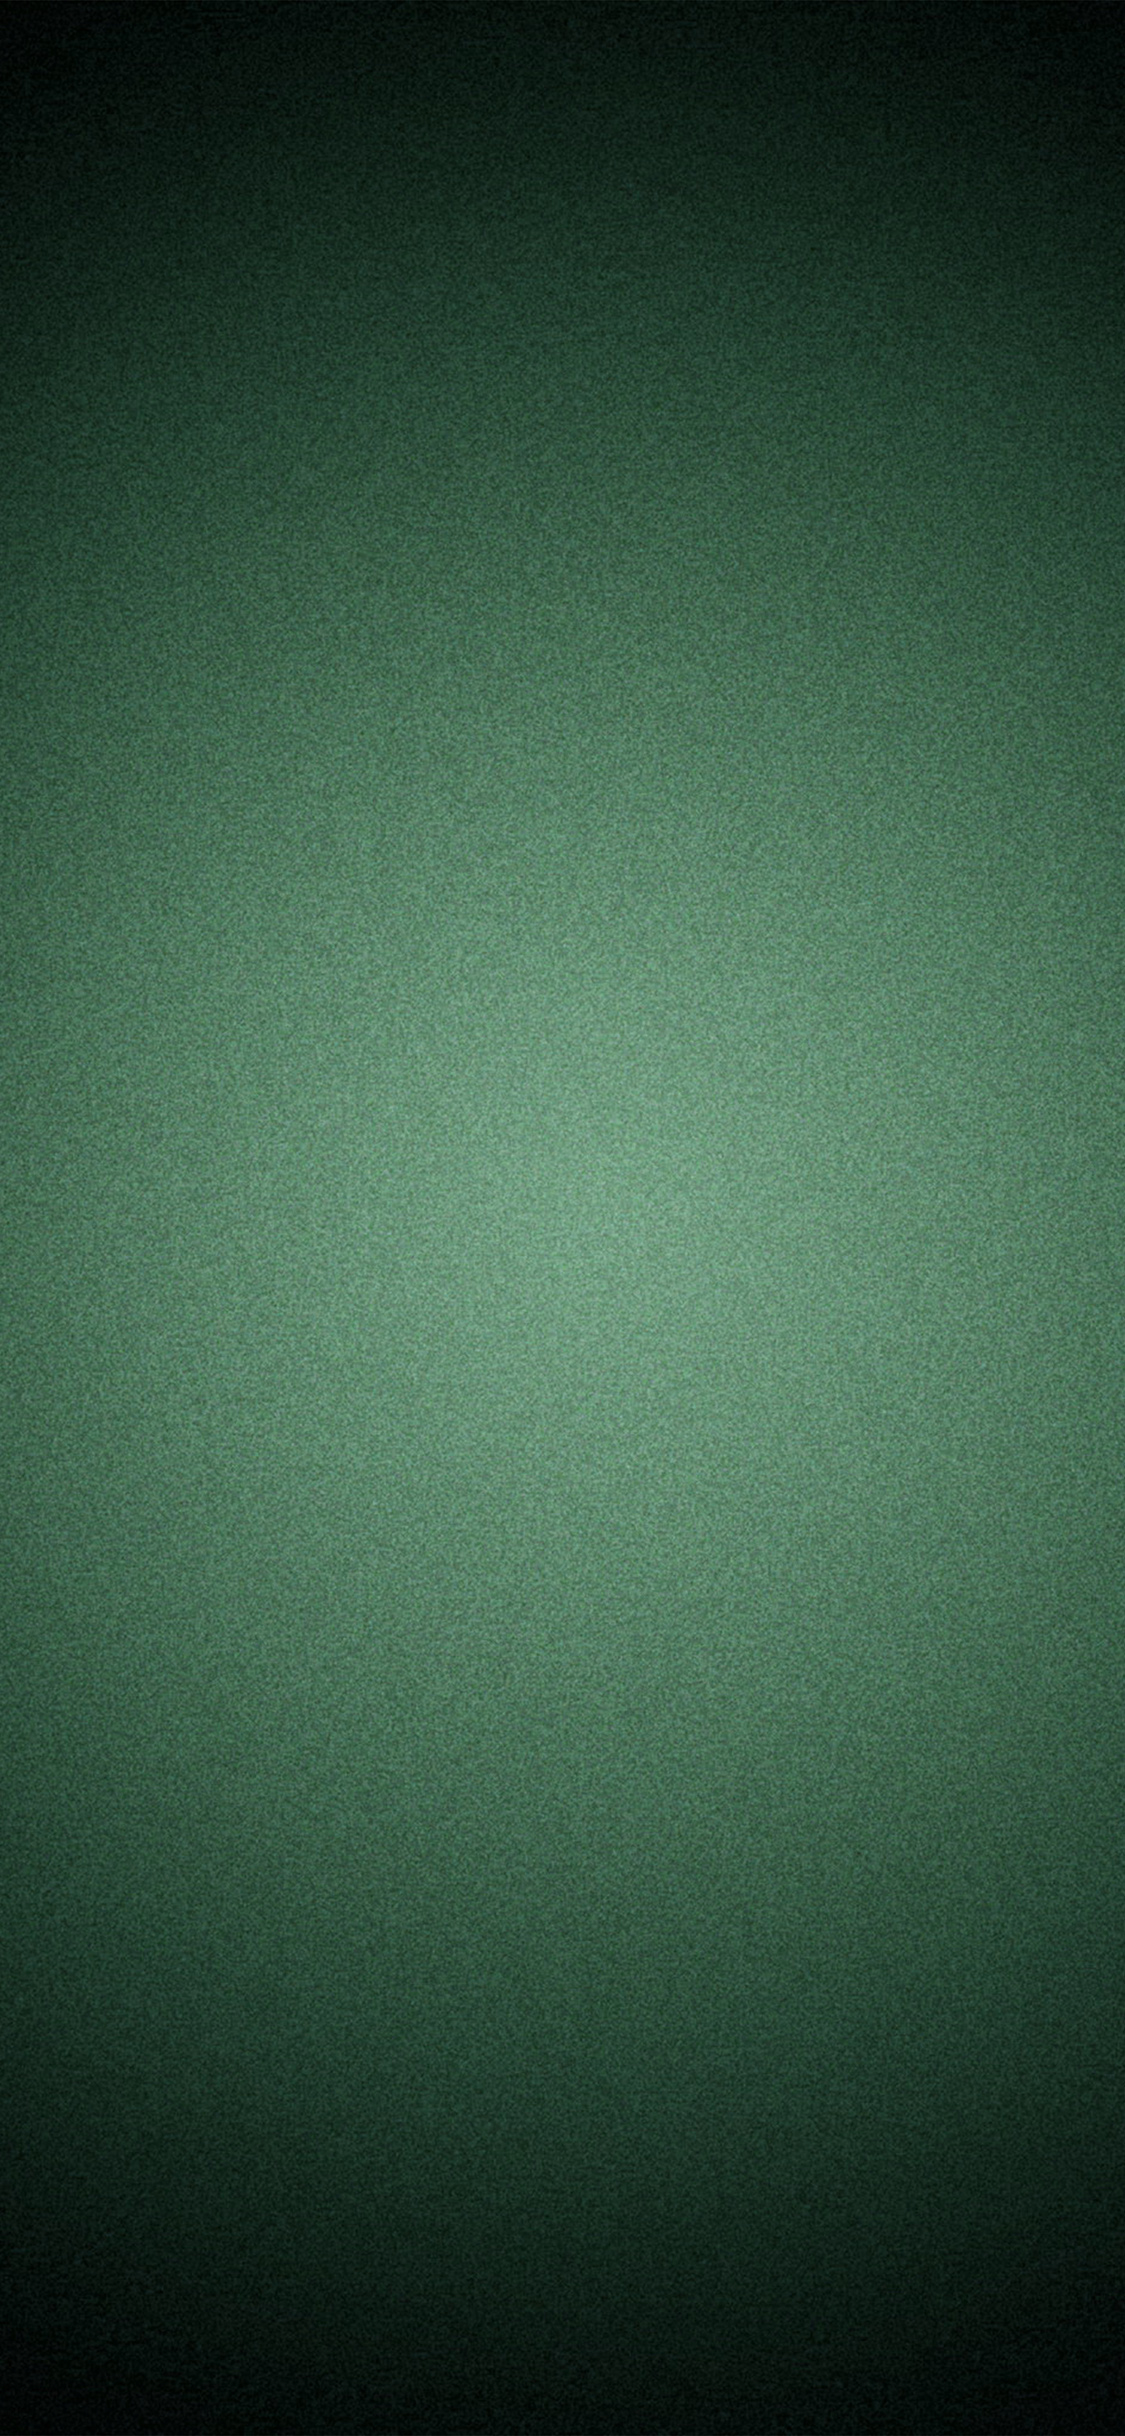 iPhonexpapers.com-Apple-iPhone-wallpaper-vu86-circle-vignette-dark-green-pattern